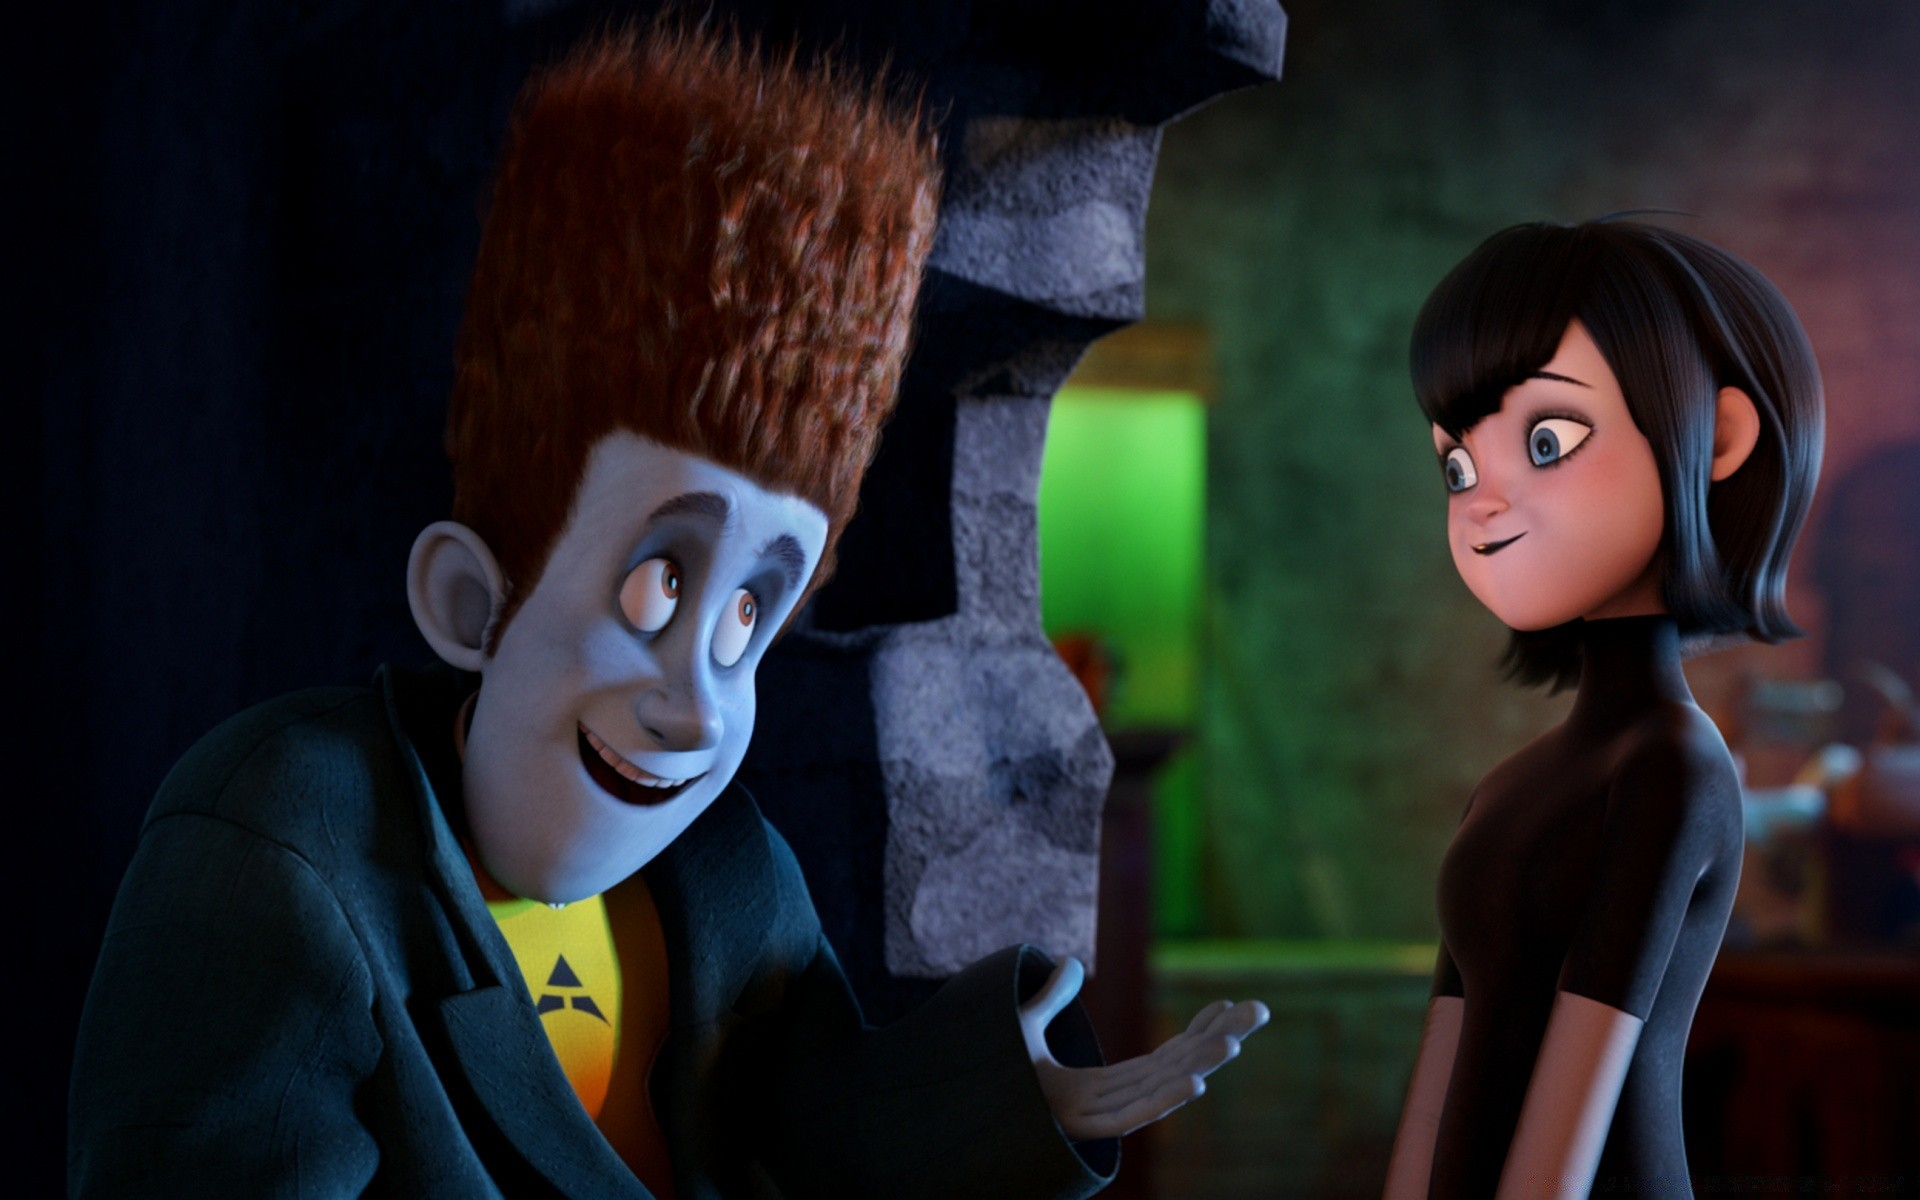 Hotel Transylvania Johnnystein And Mavis Android Wallpapers For Free